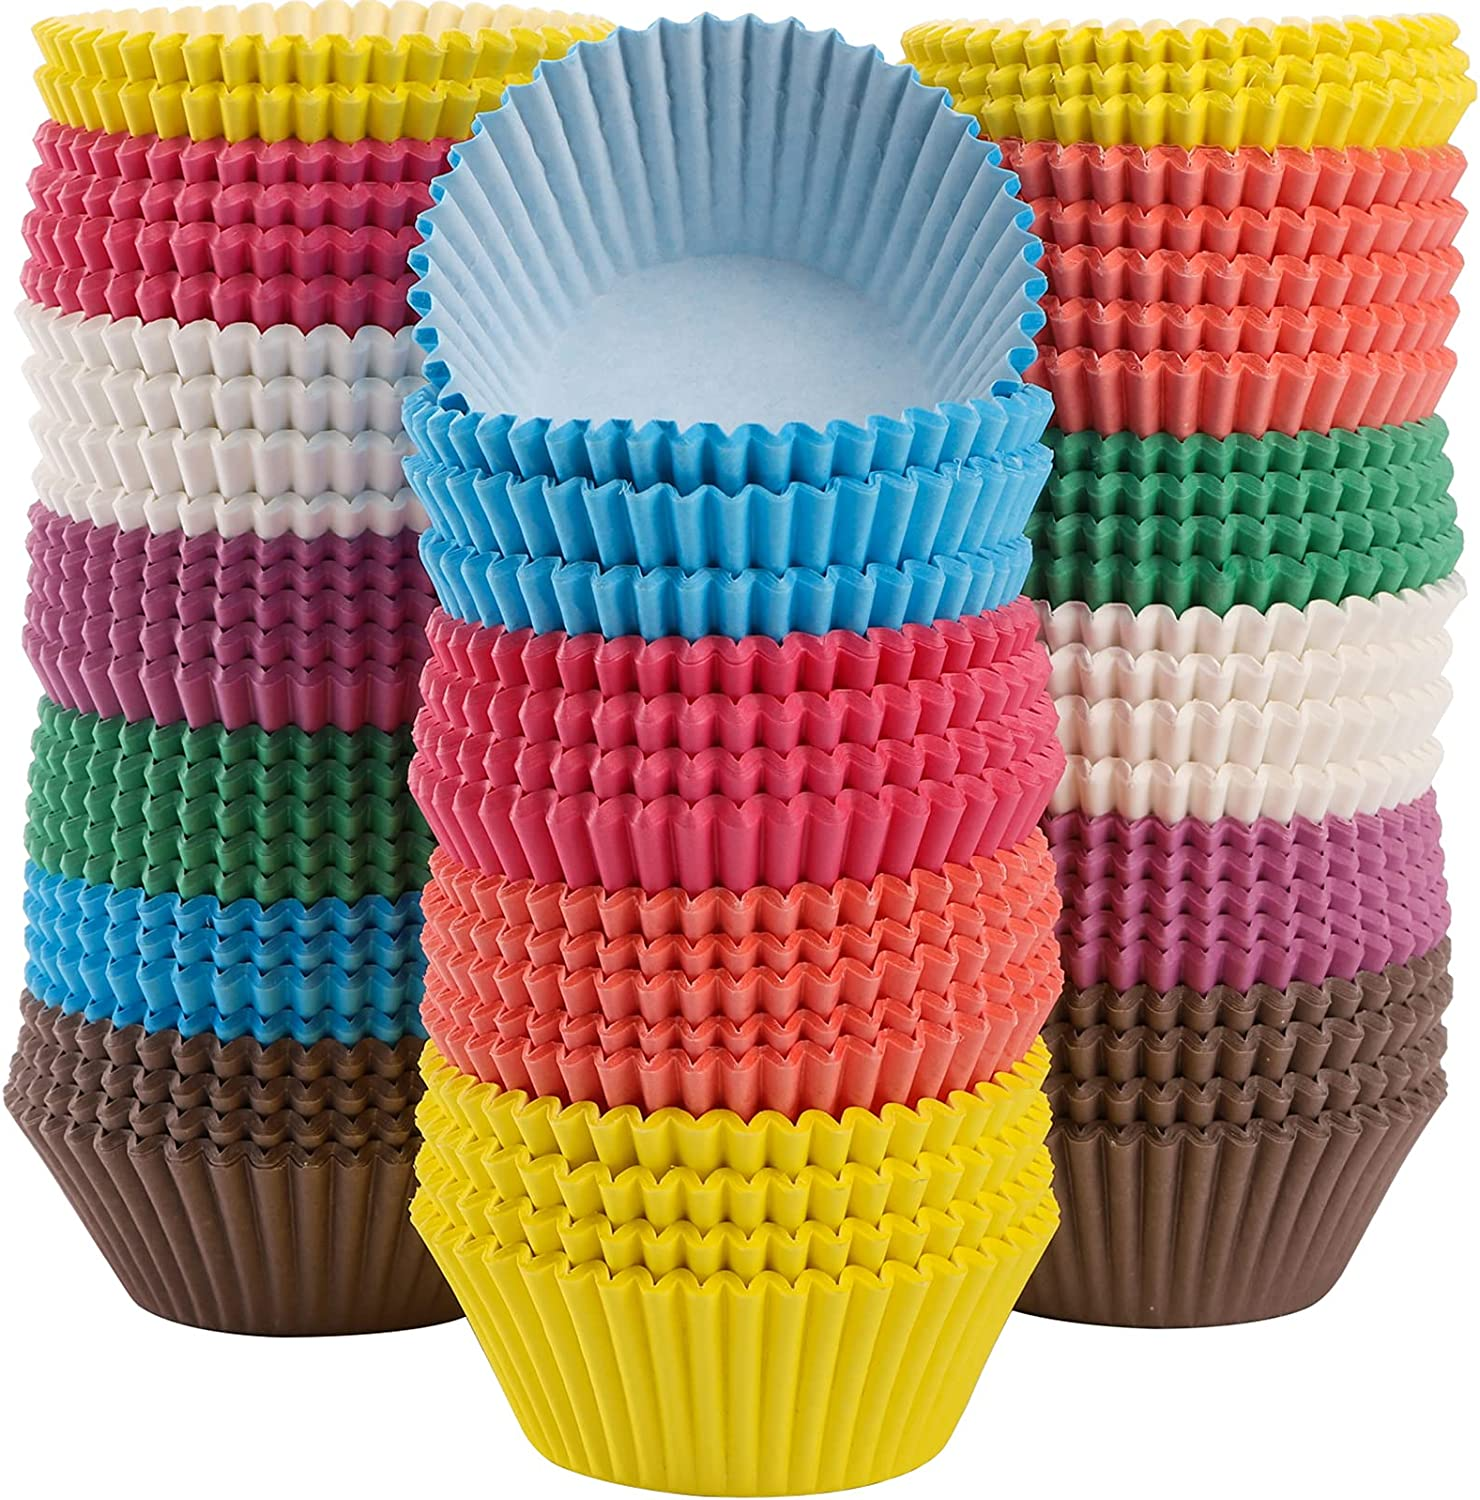 WUWEOT 800 Count Paper Baking Cups Liners, 2 Inches Odorless Cake Baking Cups, Safe Food Grade Cupcake Liners for Cake Balls, Muffins, Cupcakes, and Candies (8 colors)